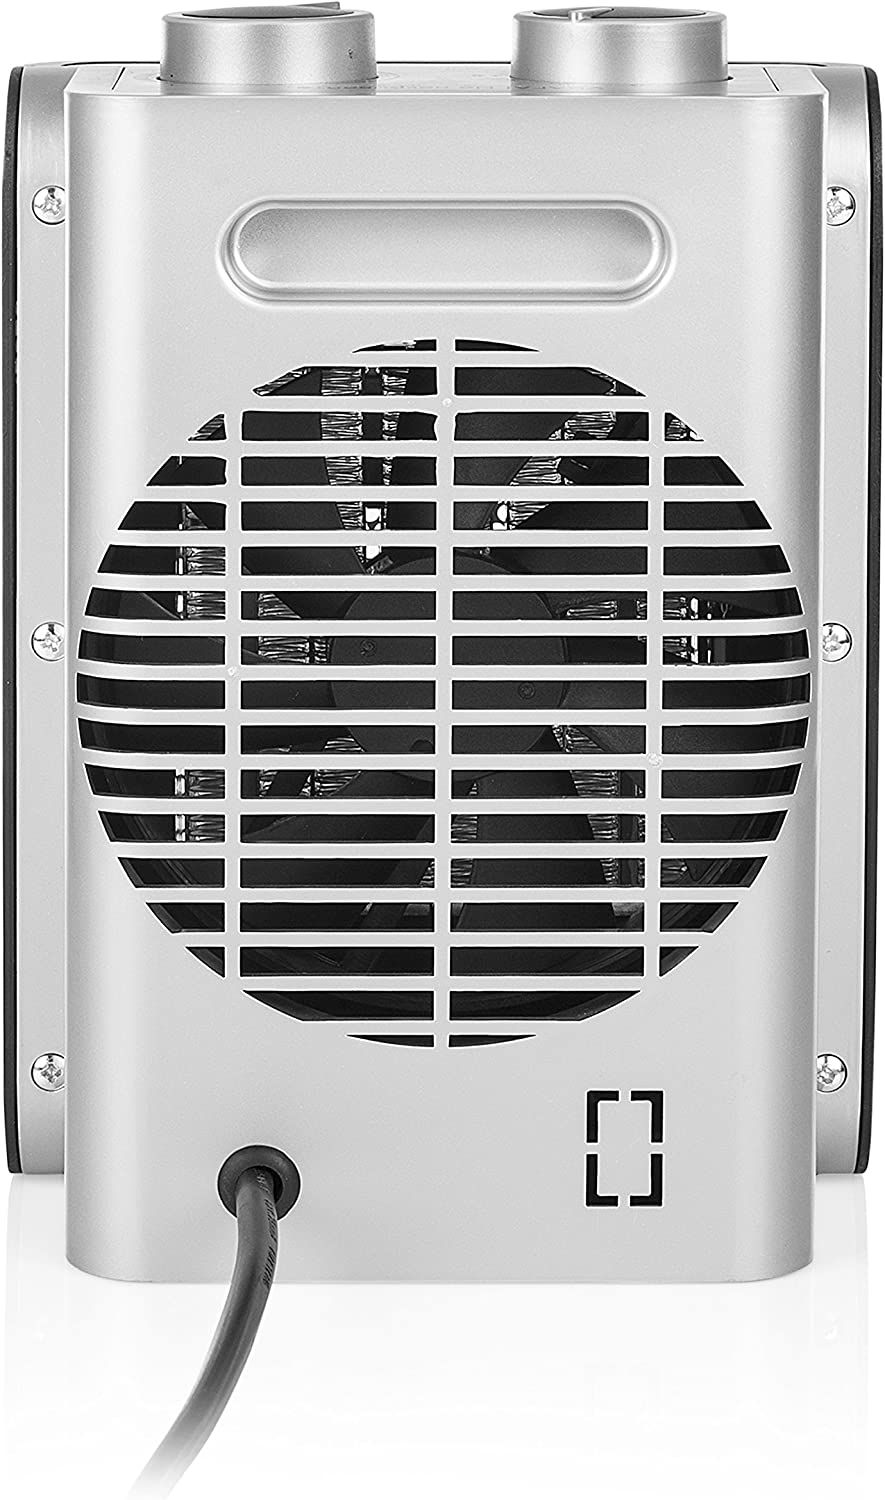 3 Speeds to Heat and Cool 1500W Tristar KA-5064UK Electric Fan Heater Silver and Black Metal 1500 W